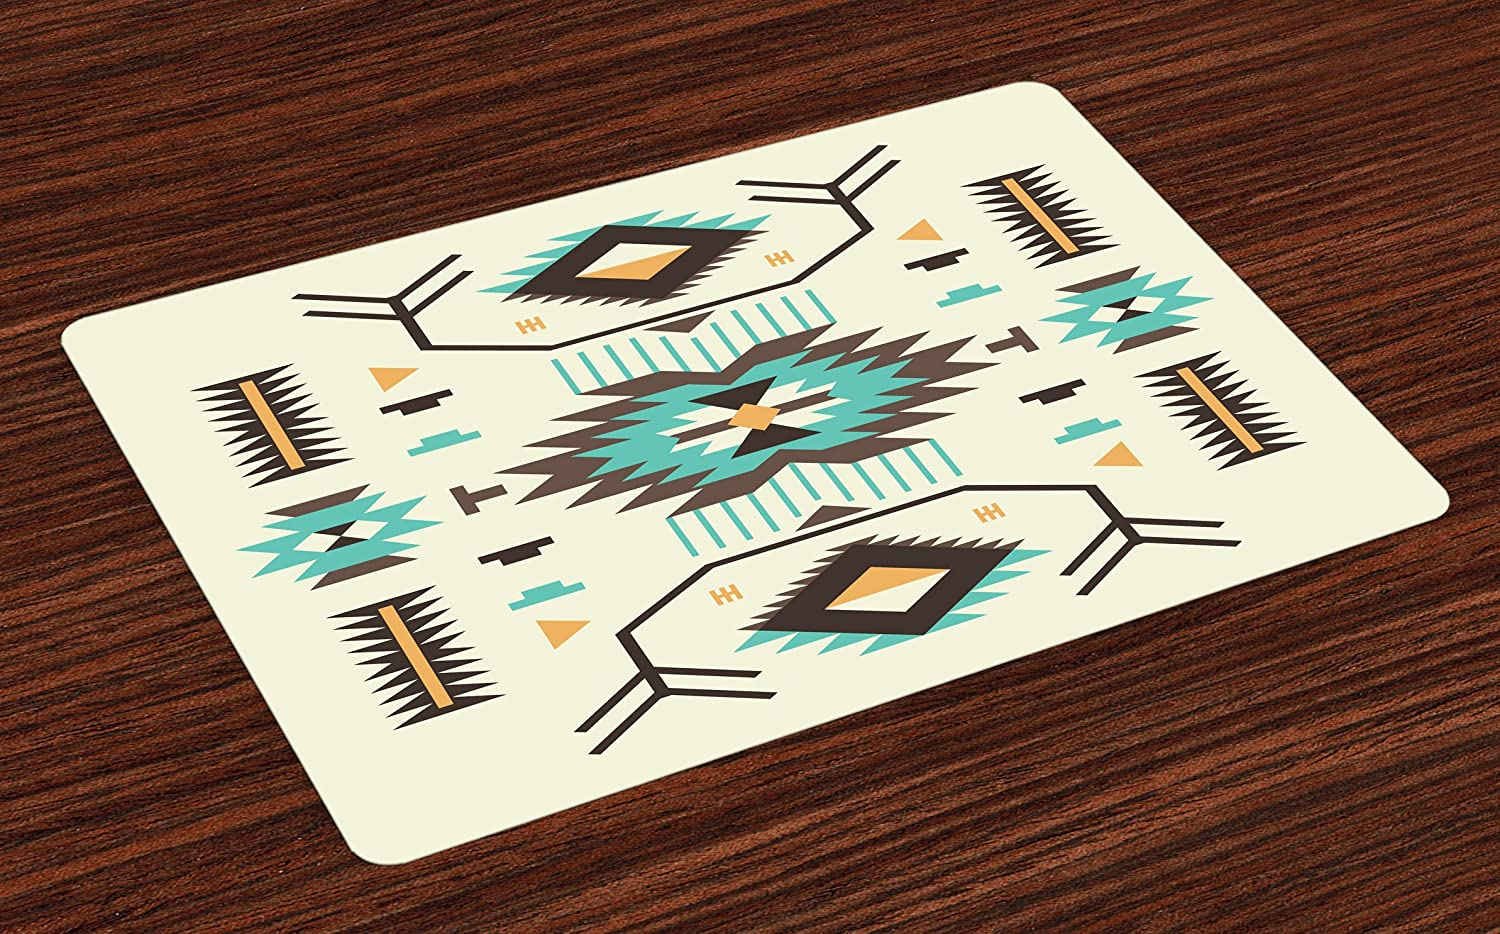 Ambesonne Southwestern Place Mats Set of 4, Ethnic Pattern Design from Ancient Aztec Culture with Indigenous Zigzag Motifs, Washable Fabric Placemats for Dining Room Kitchen Table Decor, Multicolor